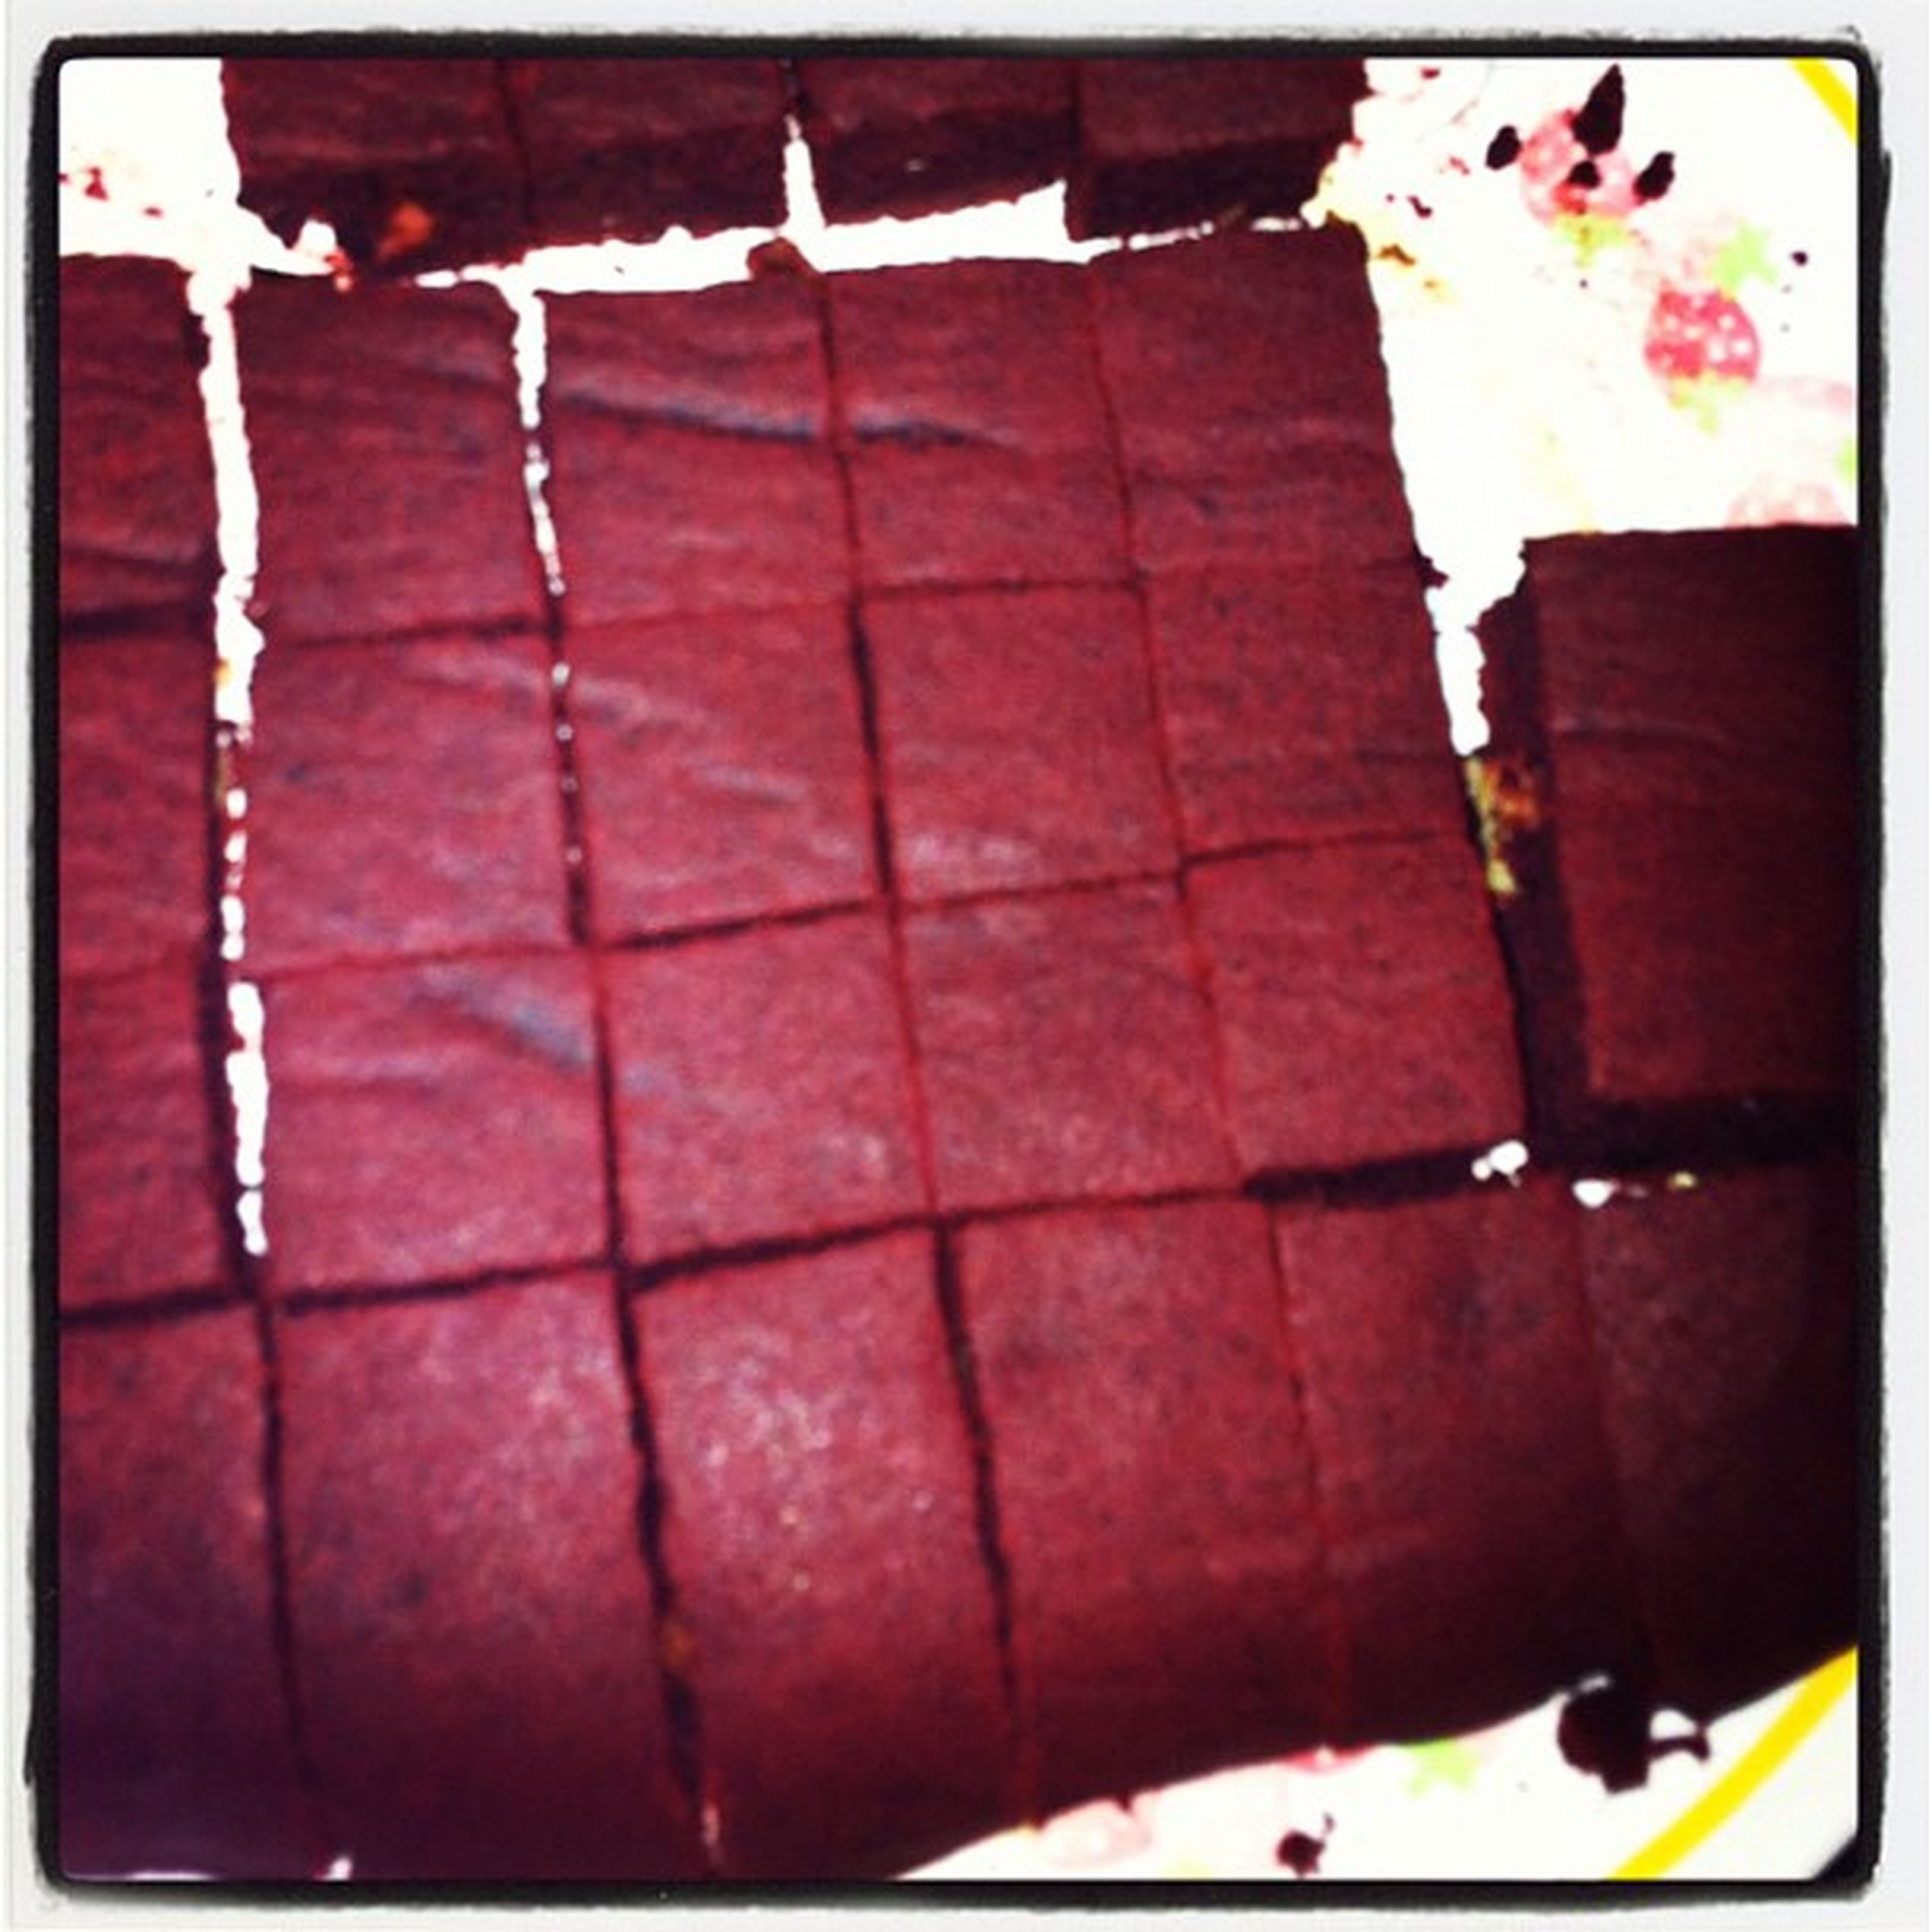 Just made red velvet brownies with walnuts for the family! Brownies Redvelvet Redvelvetbrownies Walnuts yum baking